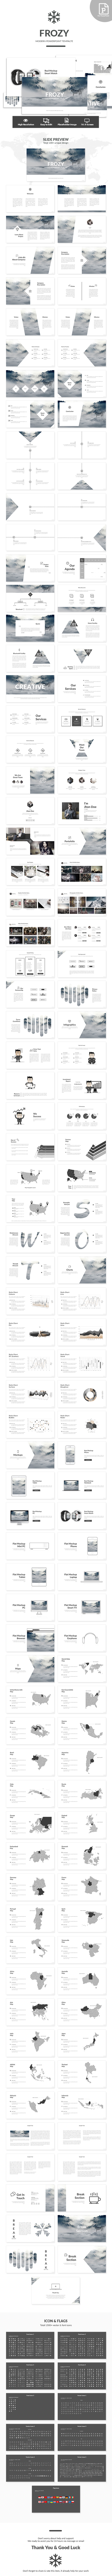 Frozy - Minimal PowerPoint Template - Business PowerPoint Templates